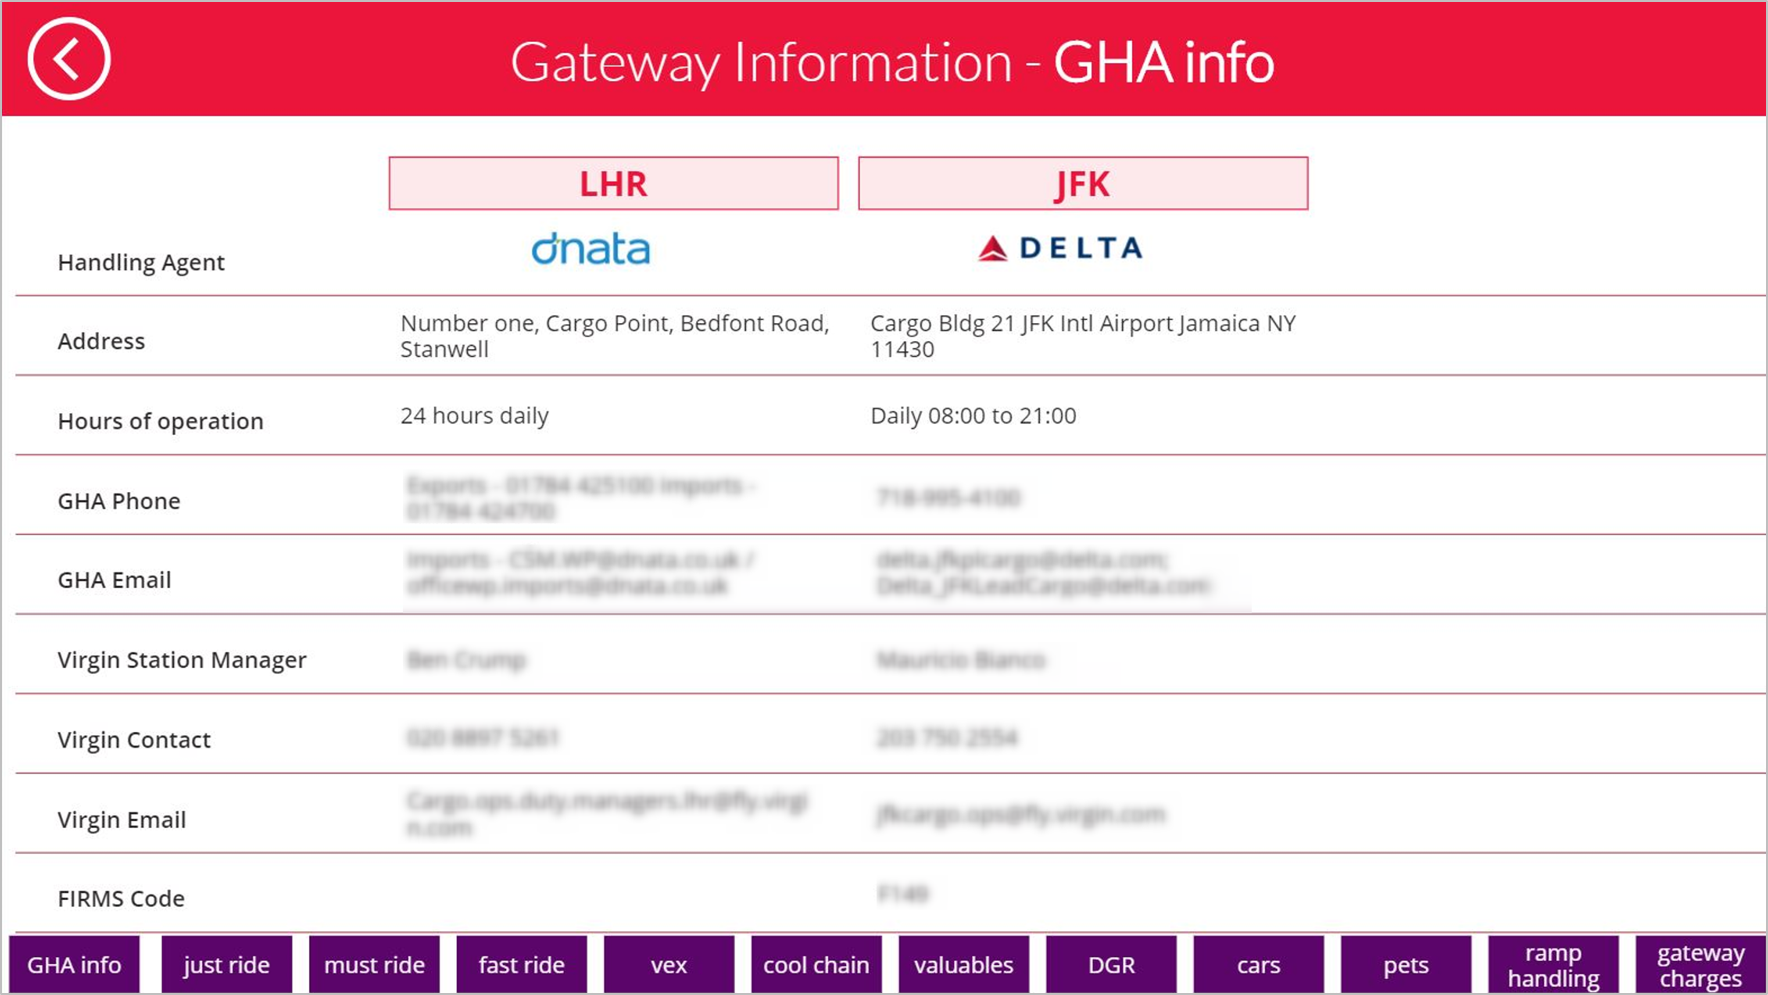 Screenshot of Gateway Information app